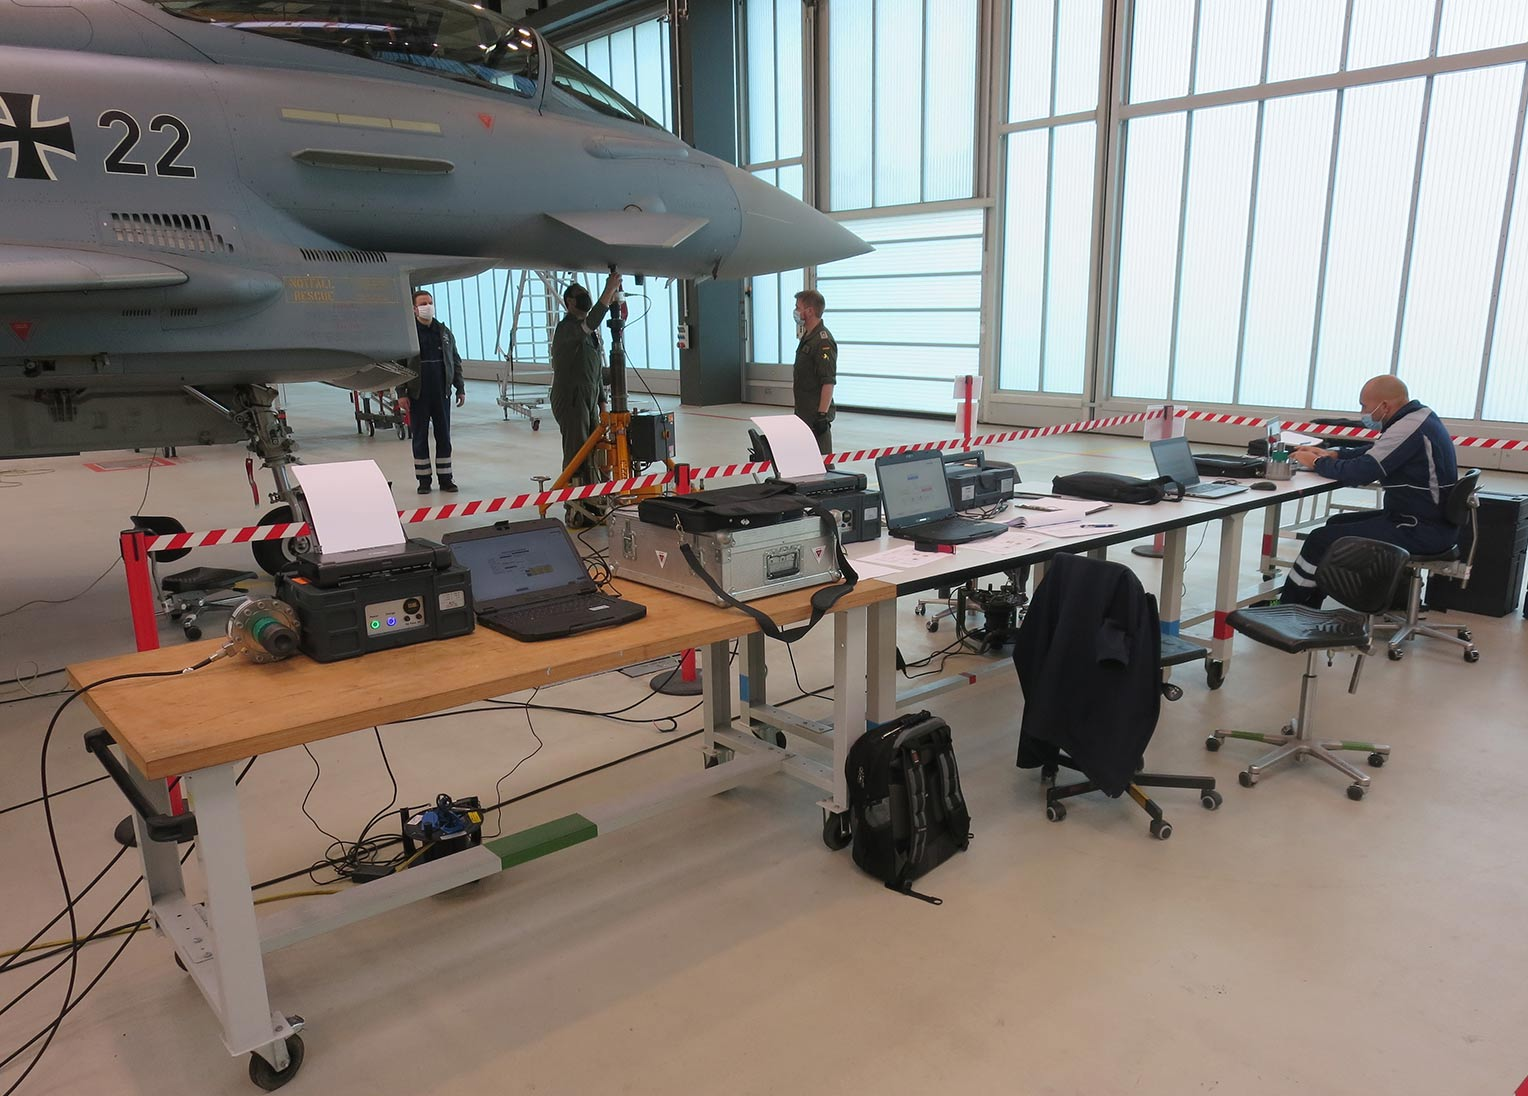 Airbus In-Service Support System acceptance campaign